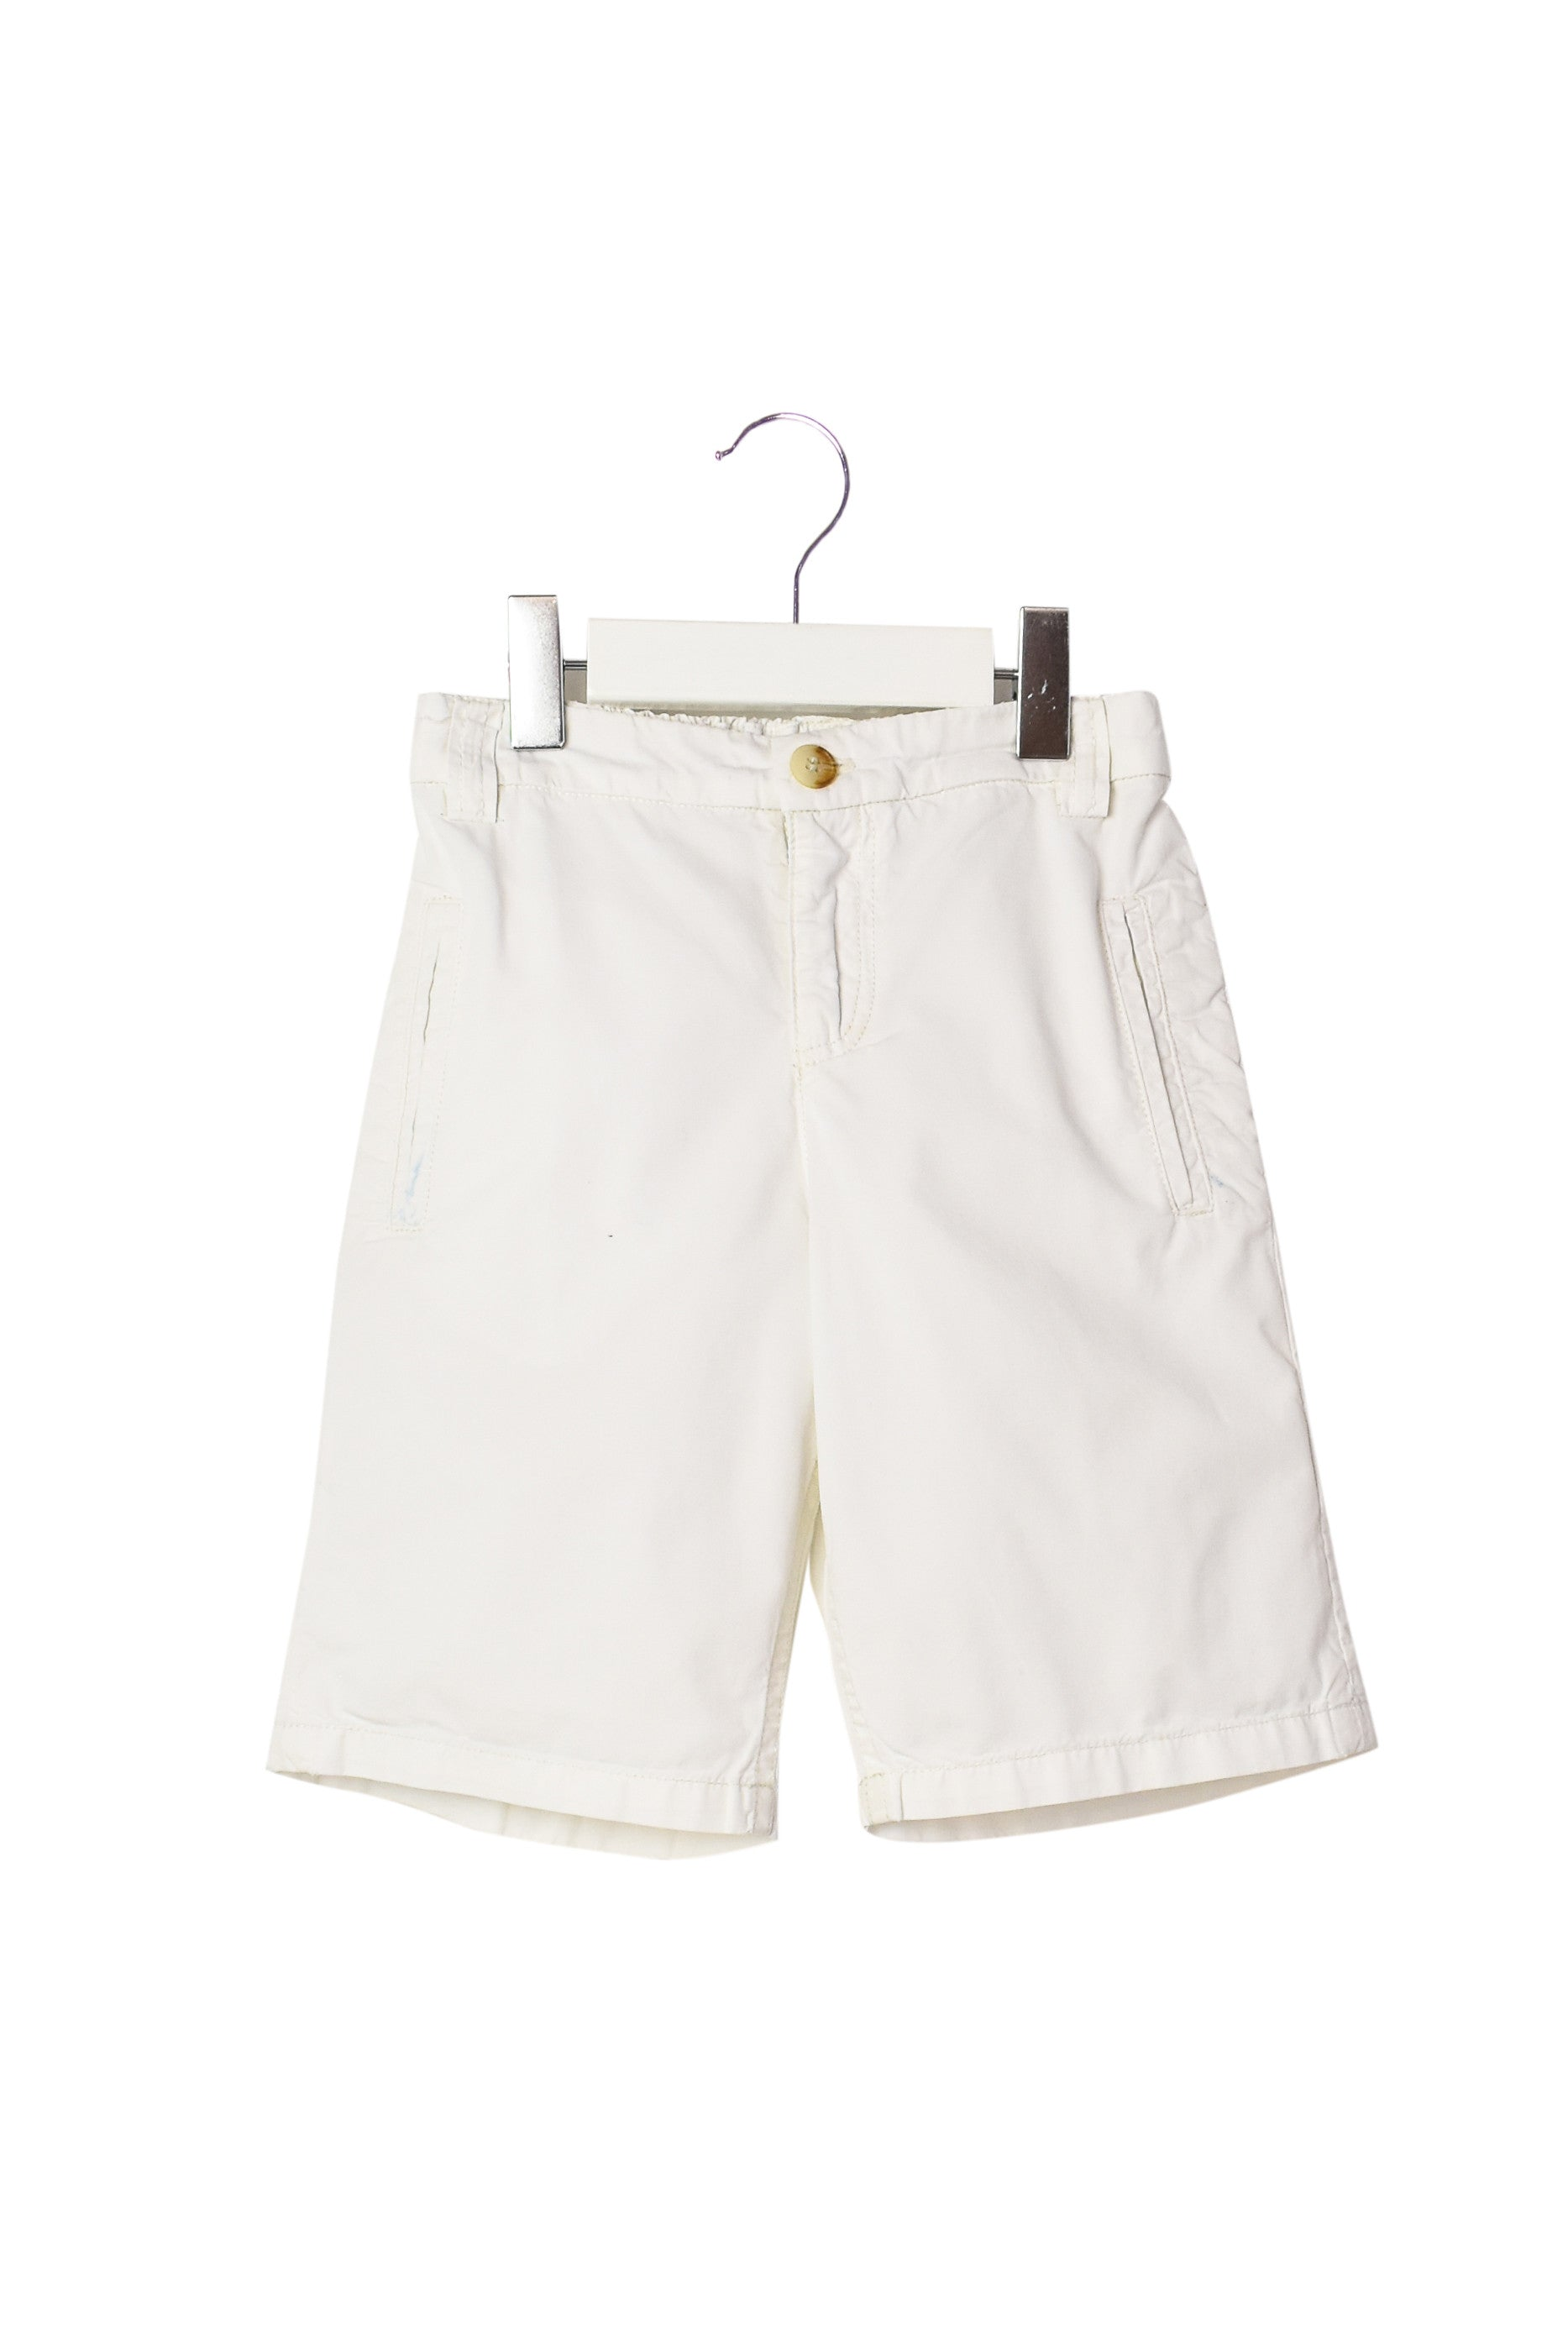 10003749 Bonpoint Kids~Shorts 4T at Retykle